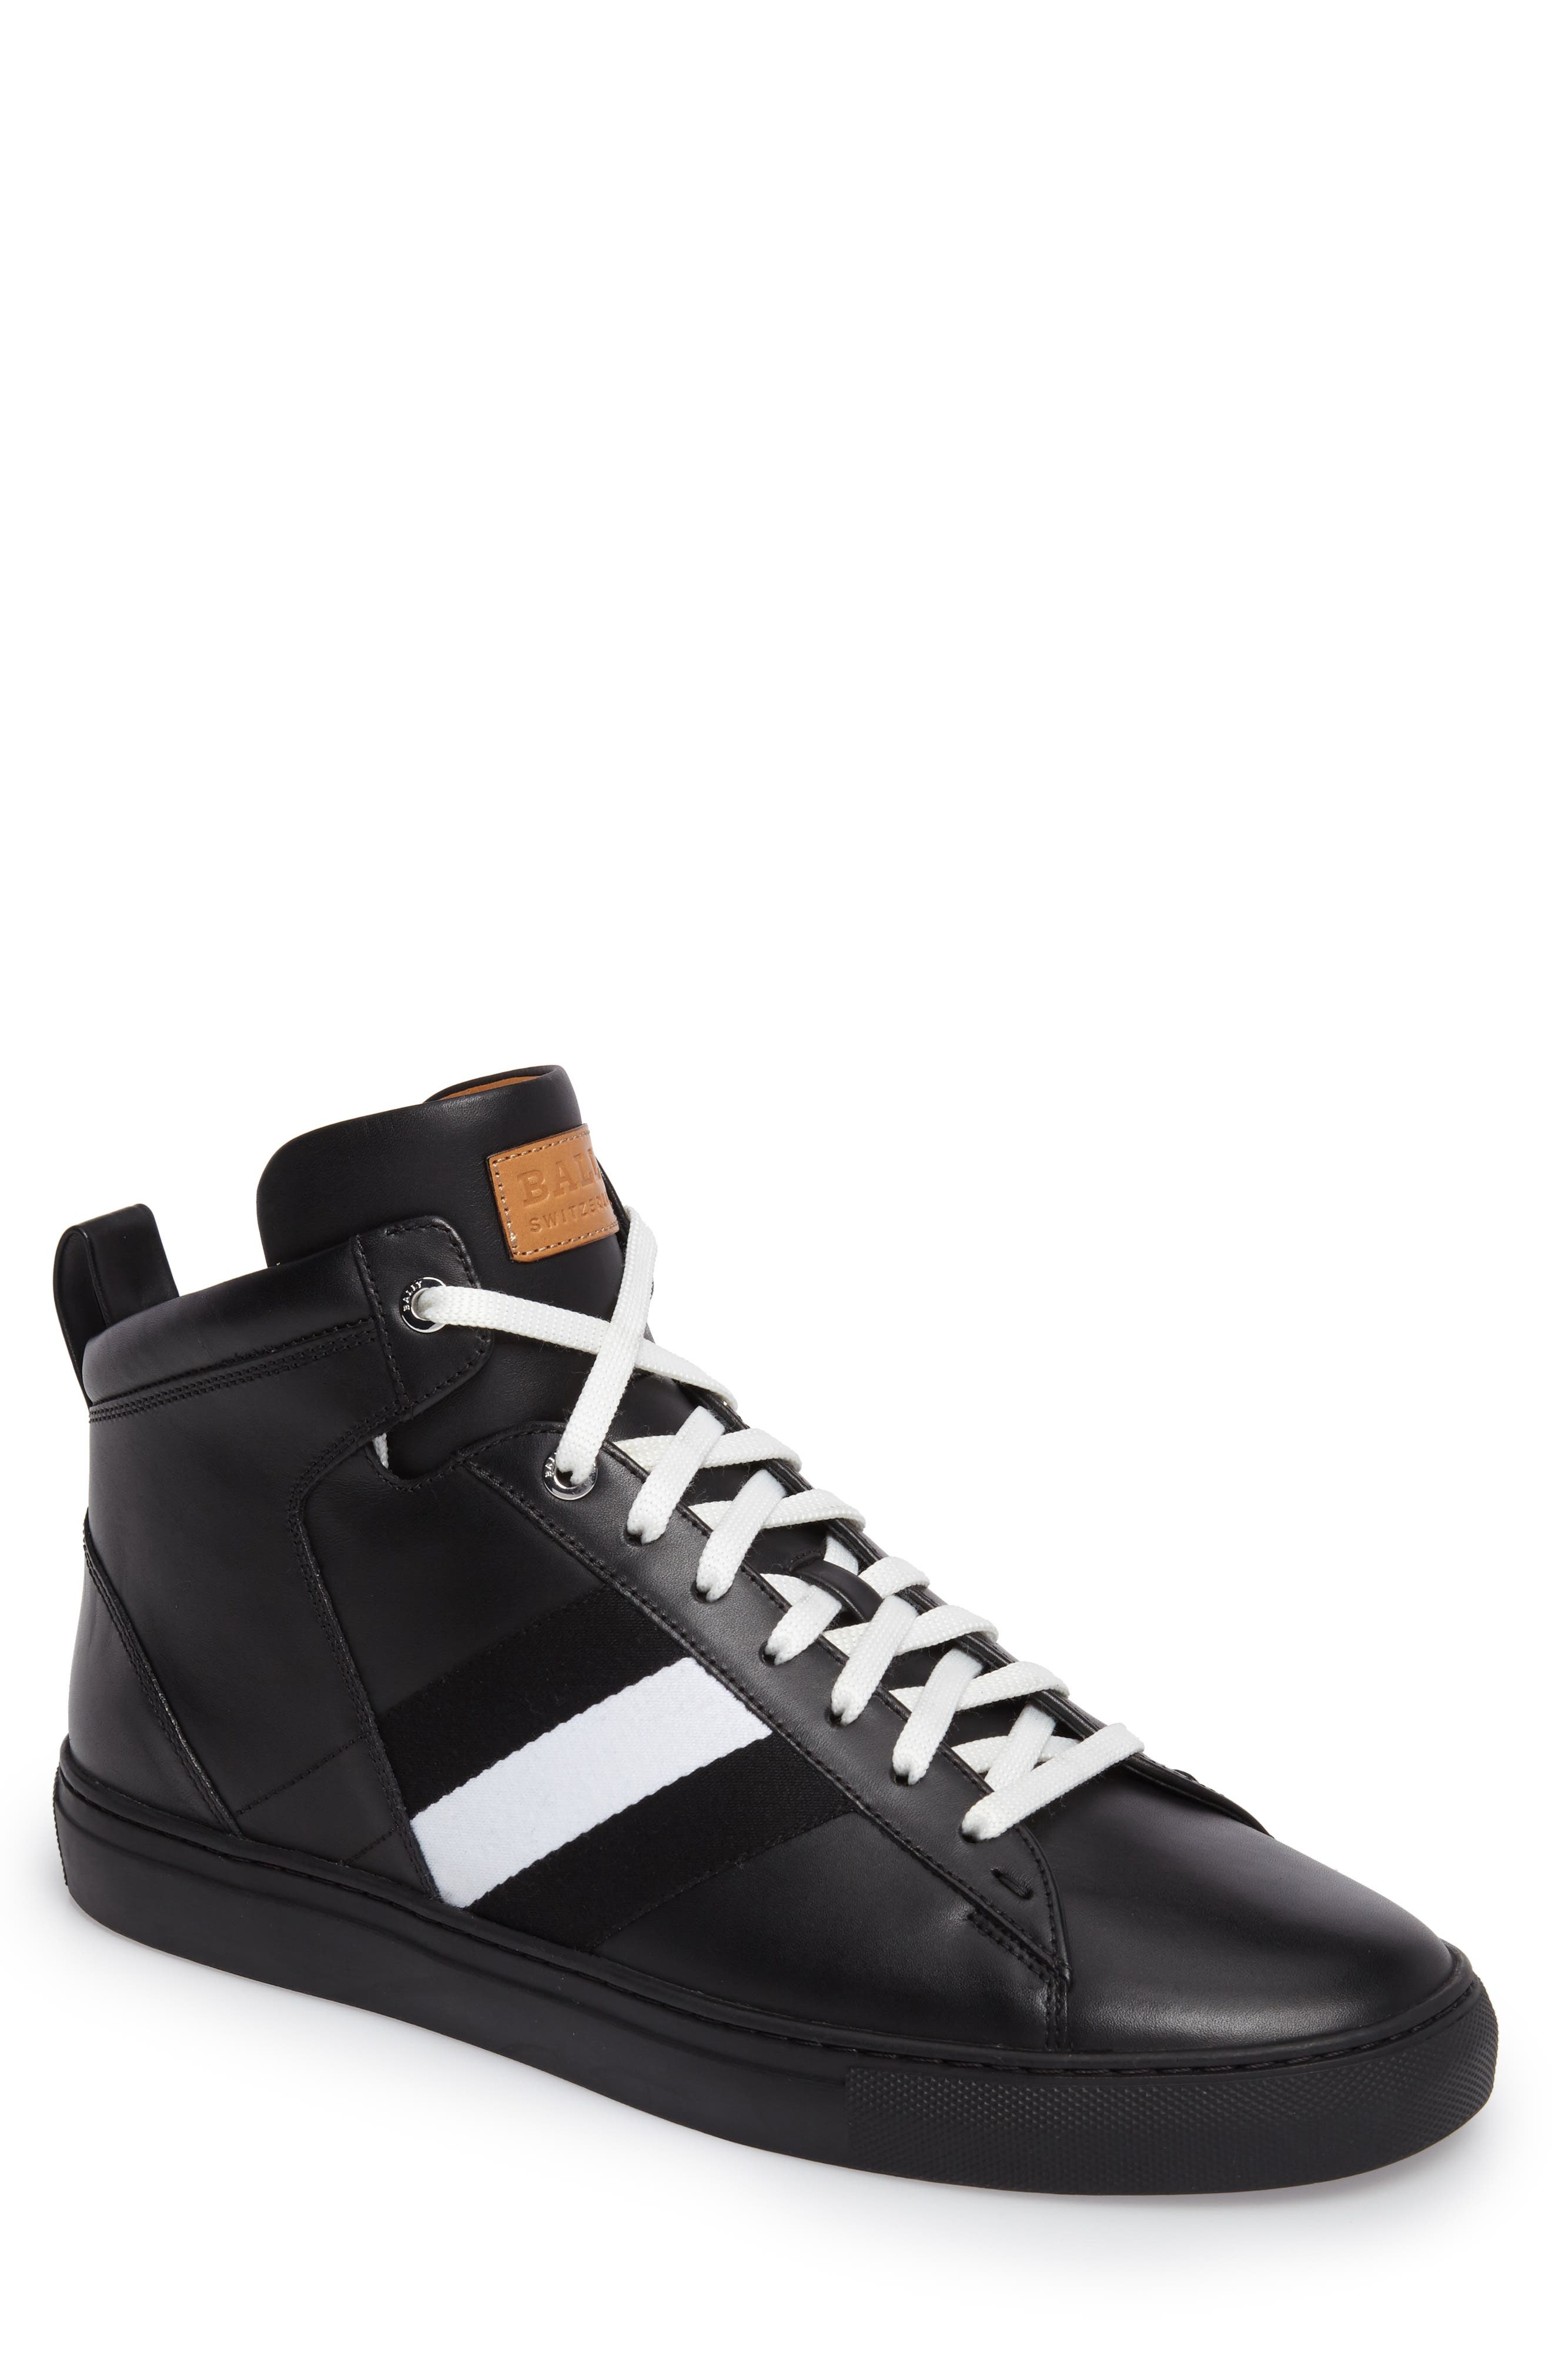 Bally Hedern Sneaker (Men)